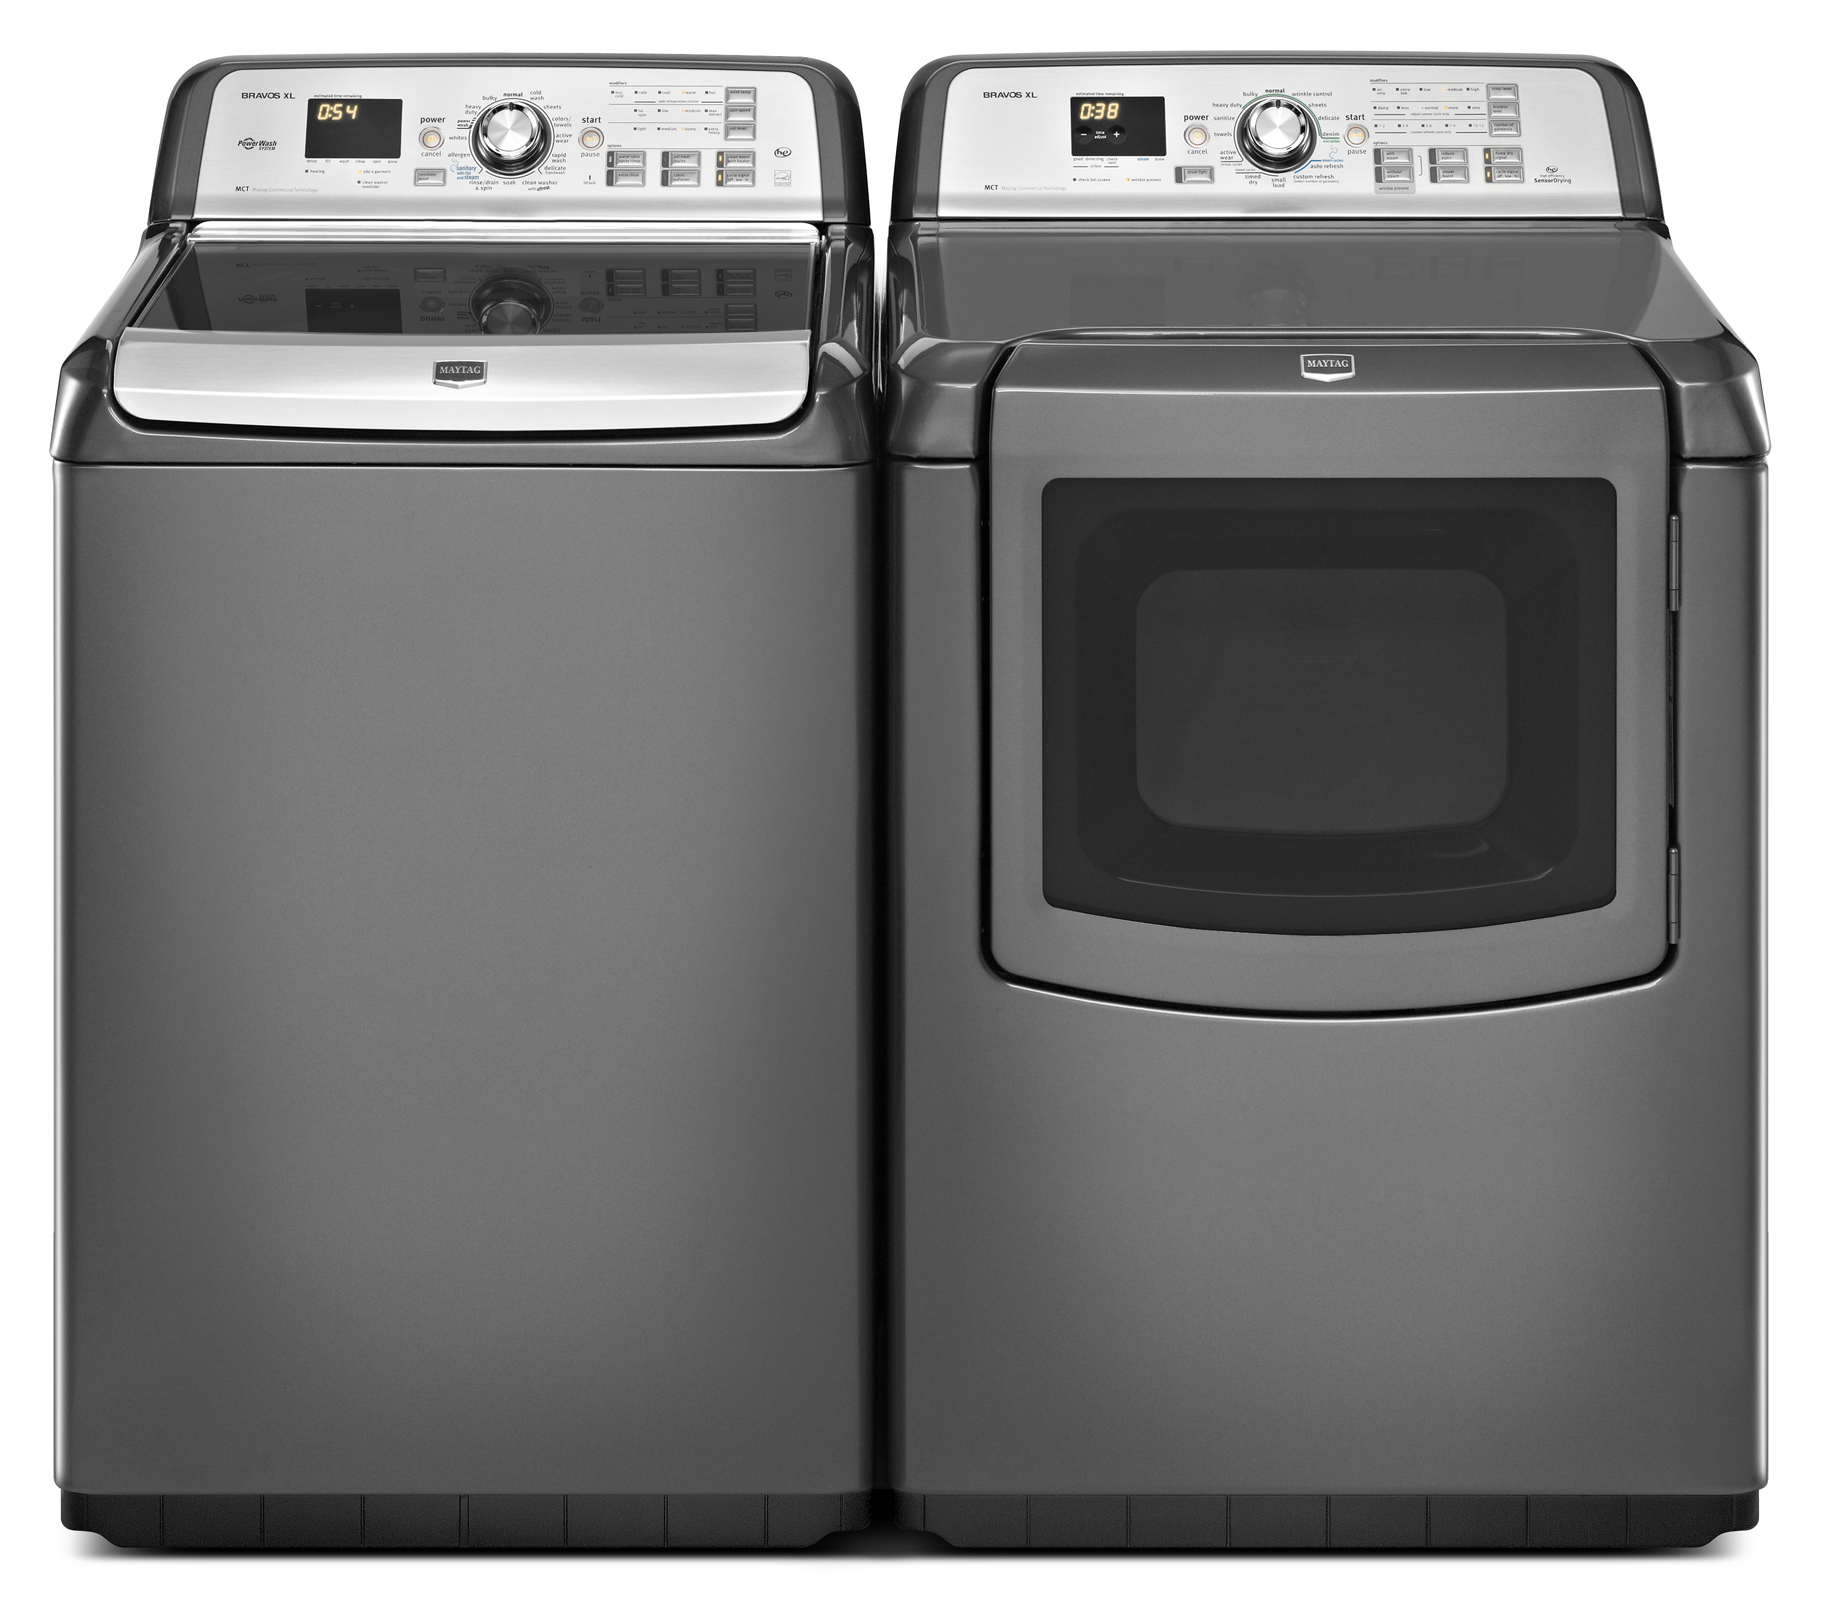 Maytag 7.3 cu. ft. Bravos XL® Gas Dryer w/ Custom Refresh Cycles - Granite